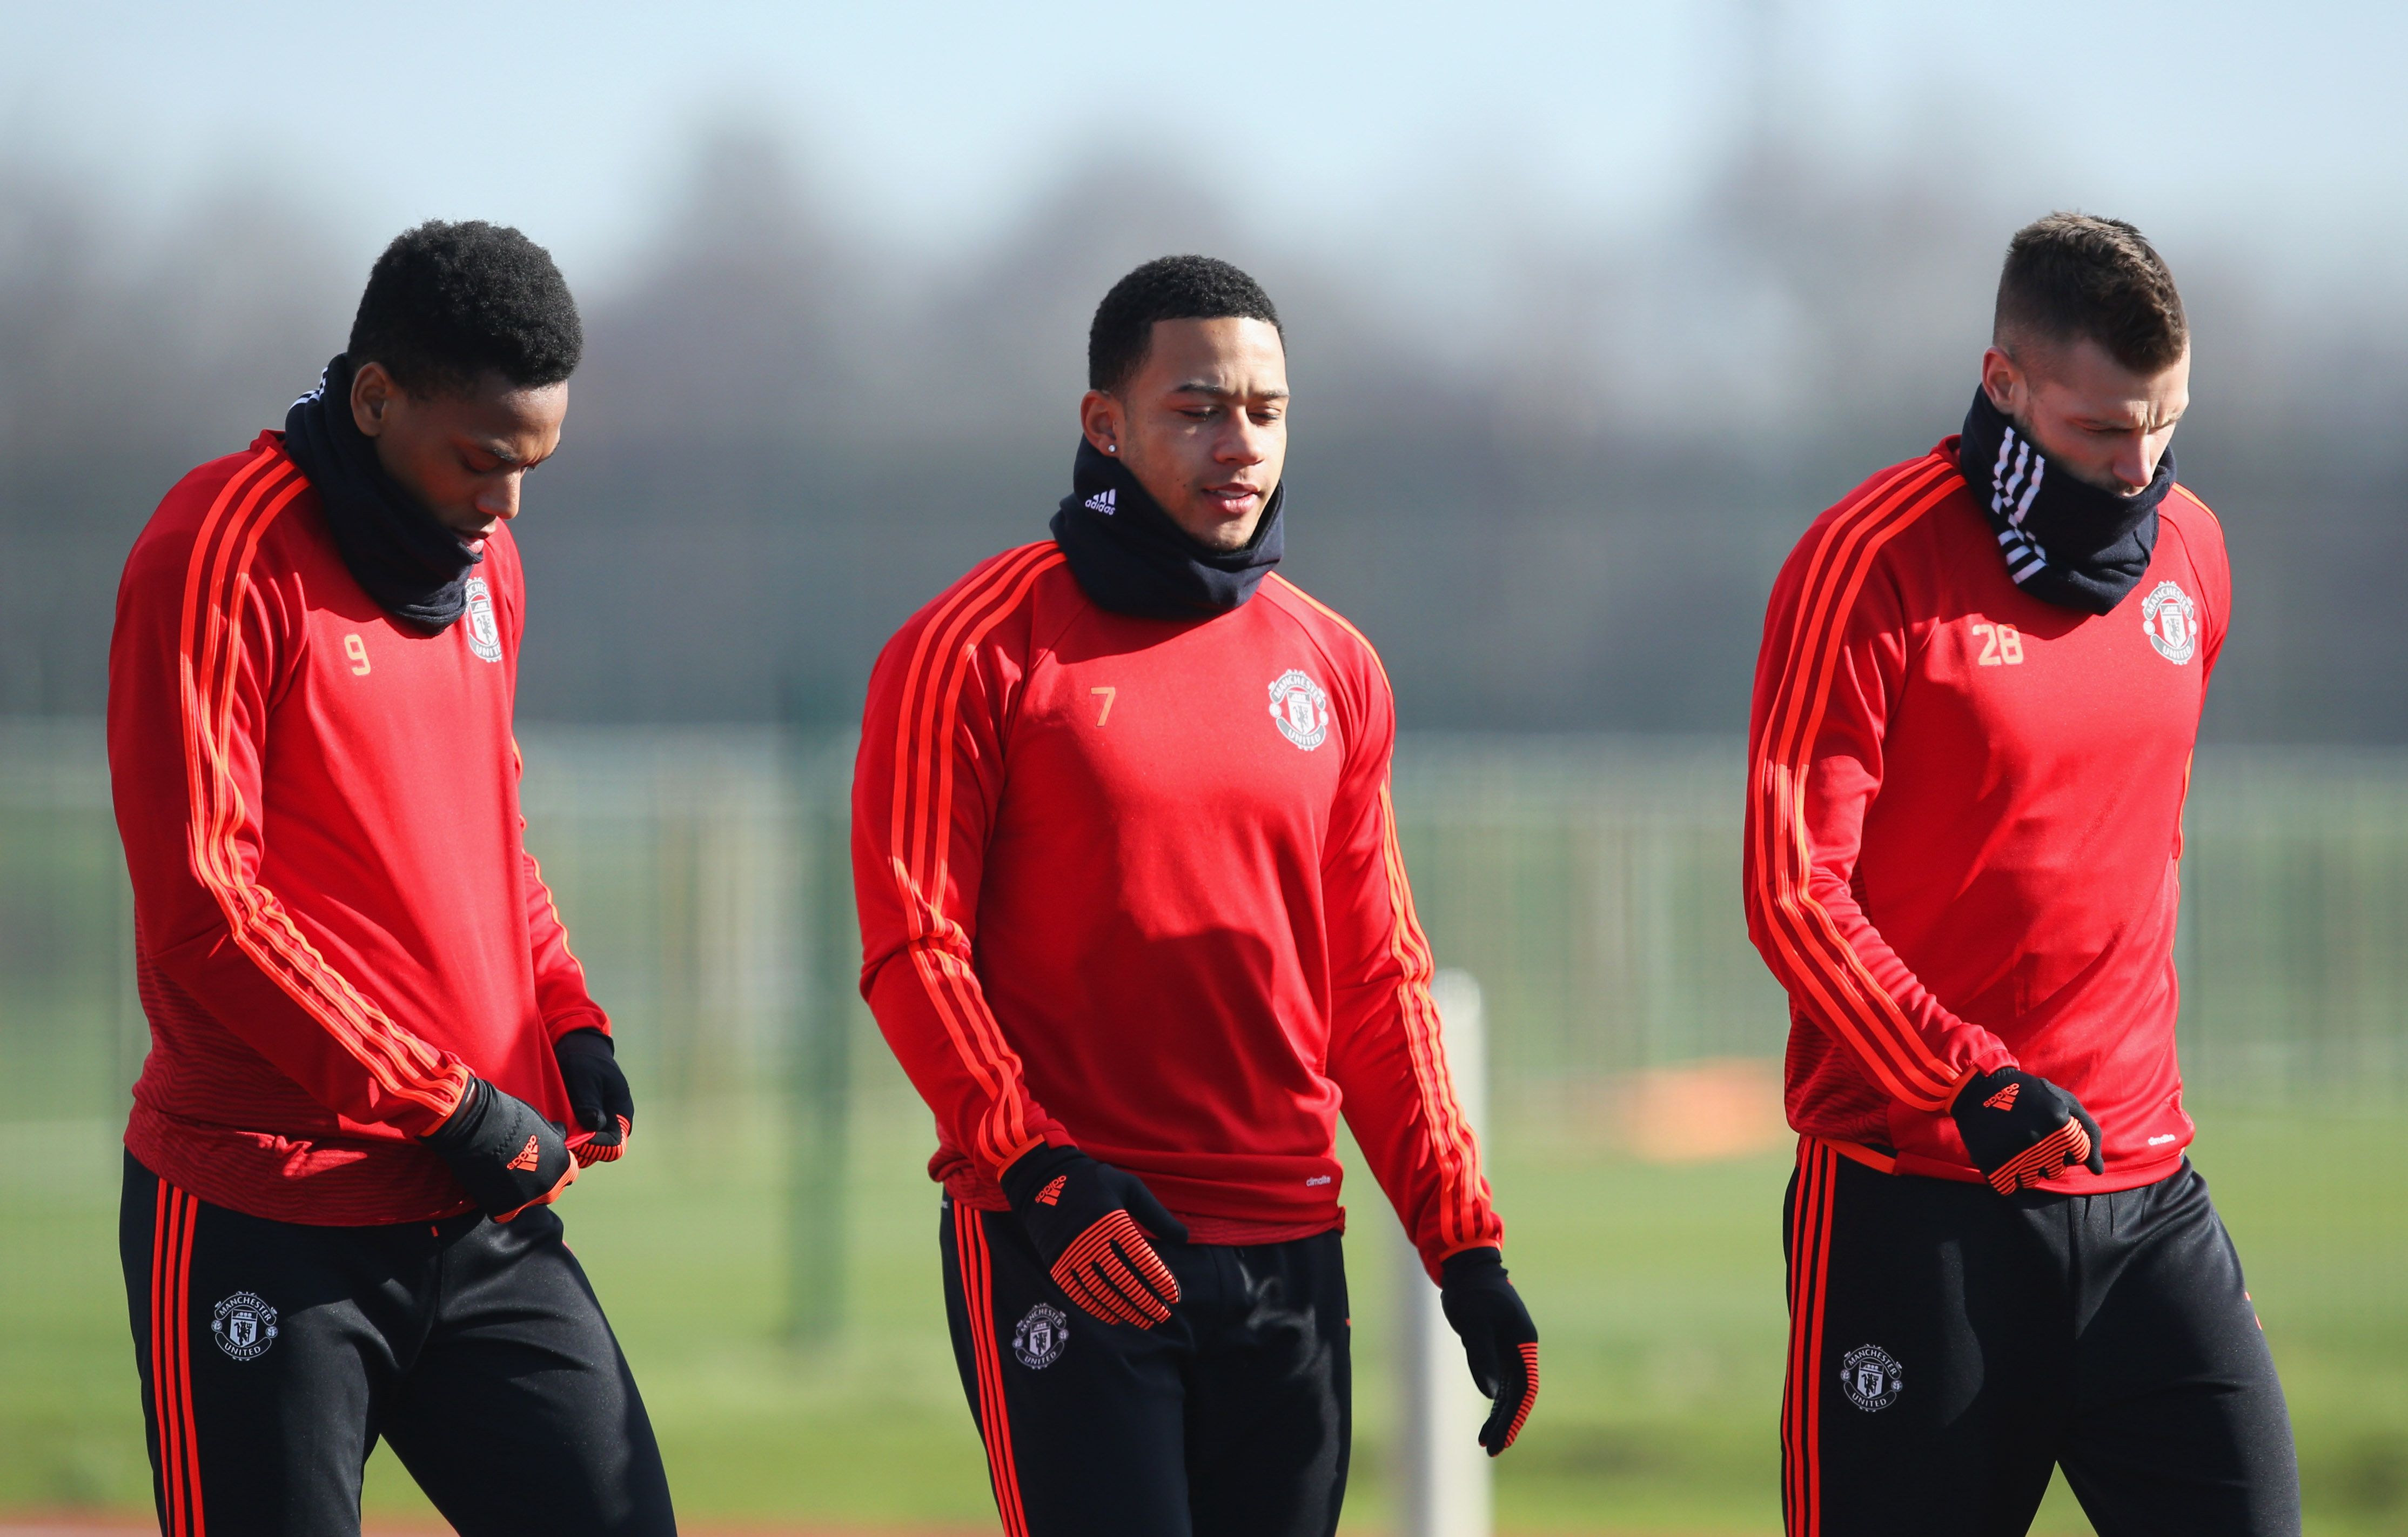 Memphis Depay and Morgan Schneiderlin won't play for Manchester United again, says Jose Mourinho